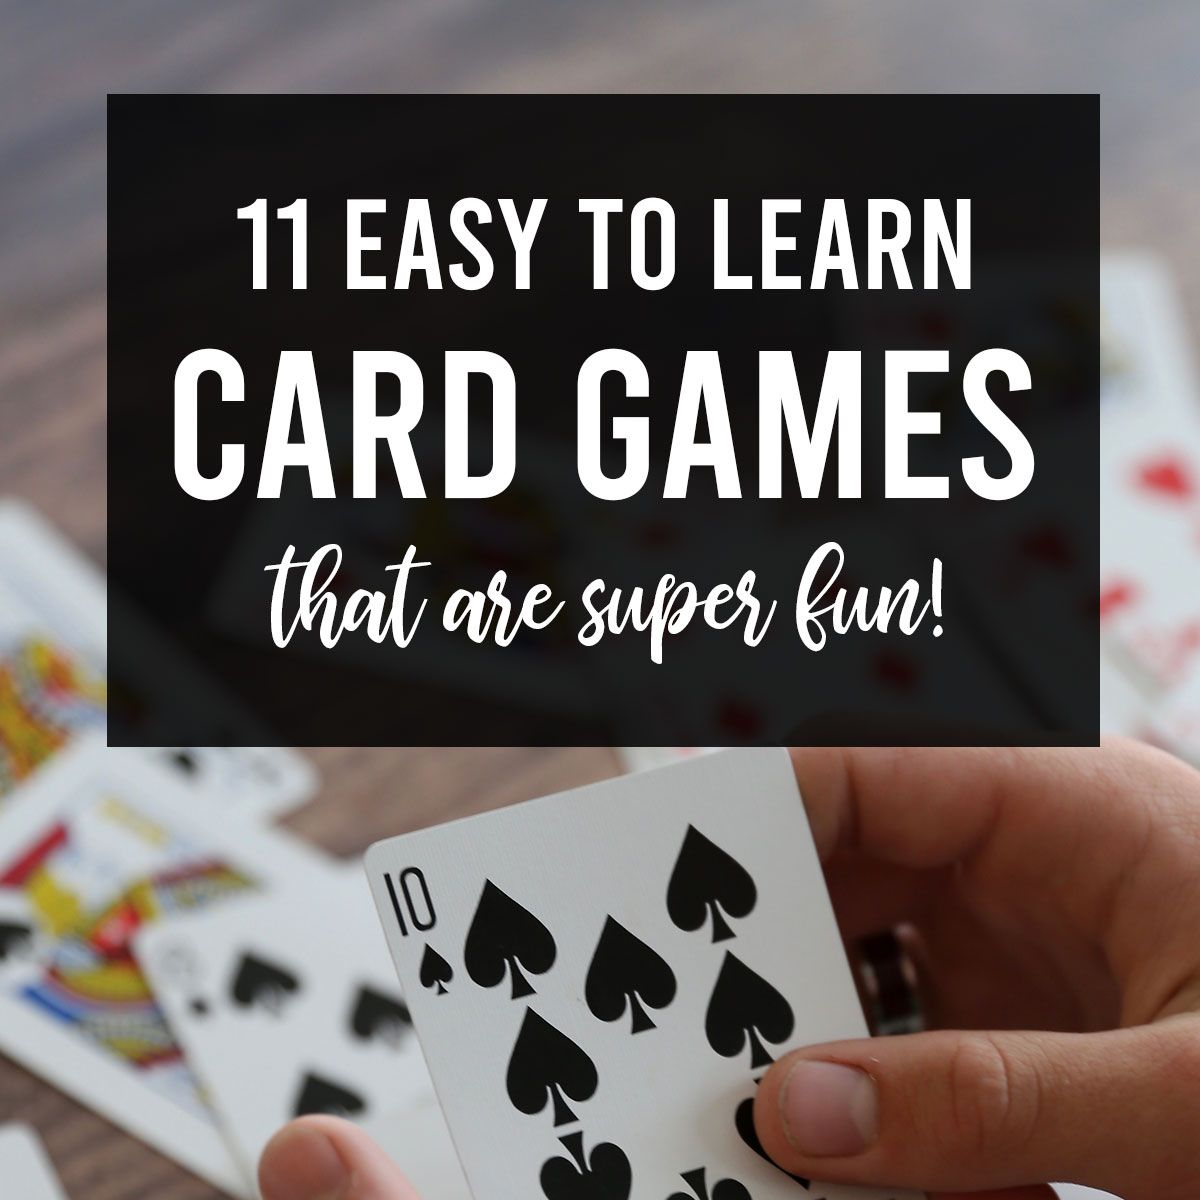 11 Fun Easy Cards Games For Kids And Adults It S Always Autumn Card Games For Kids Fun Card Games Card Games For One